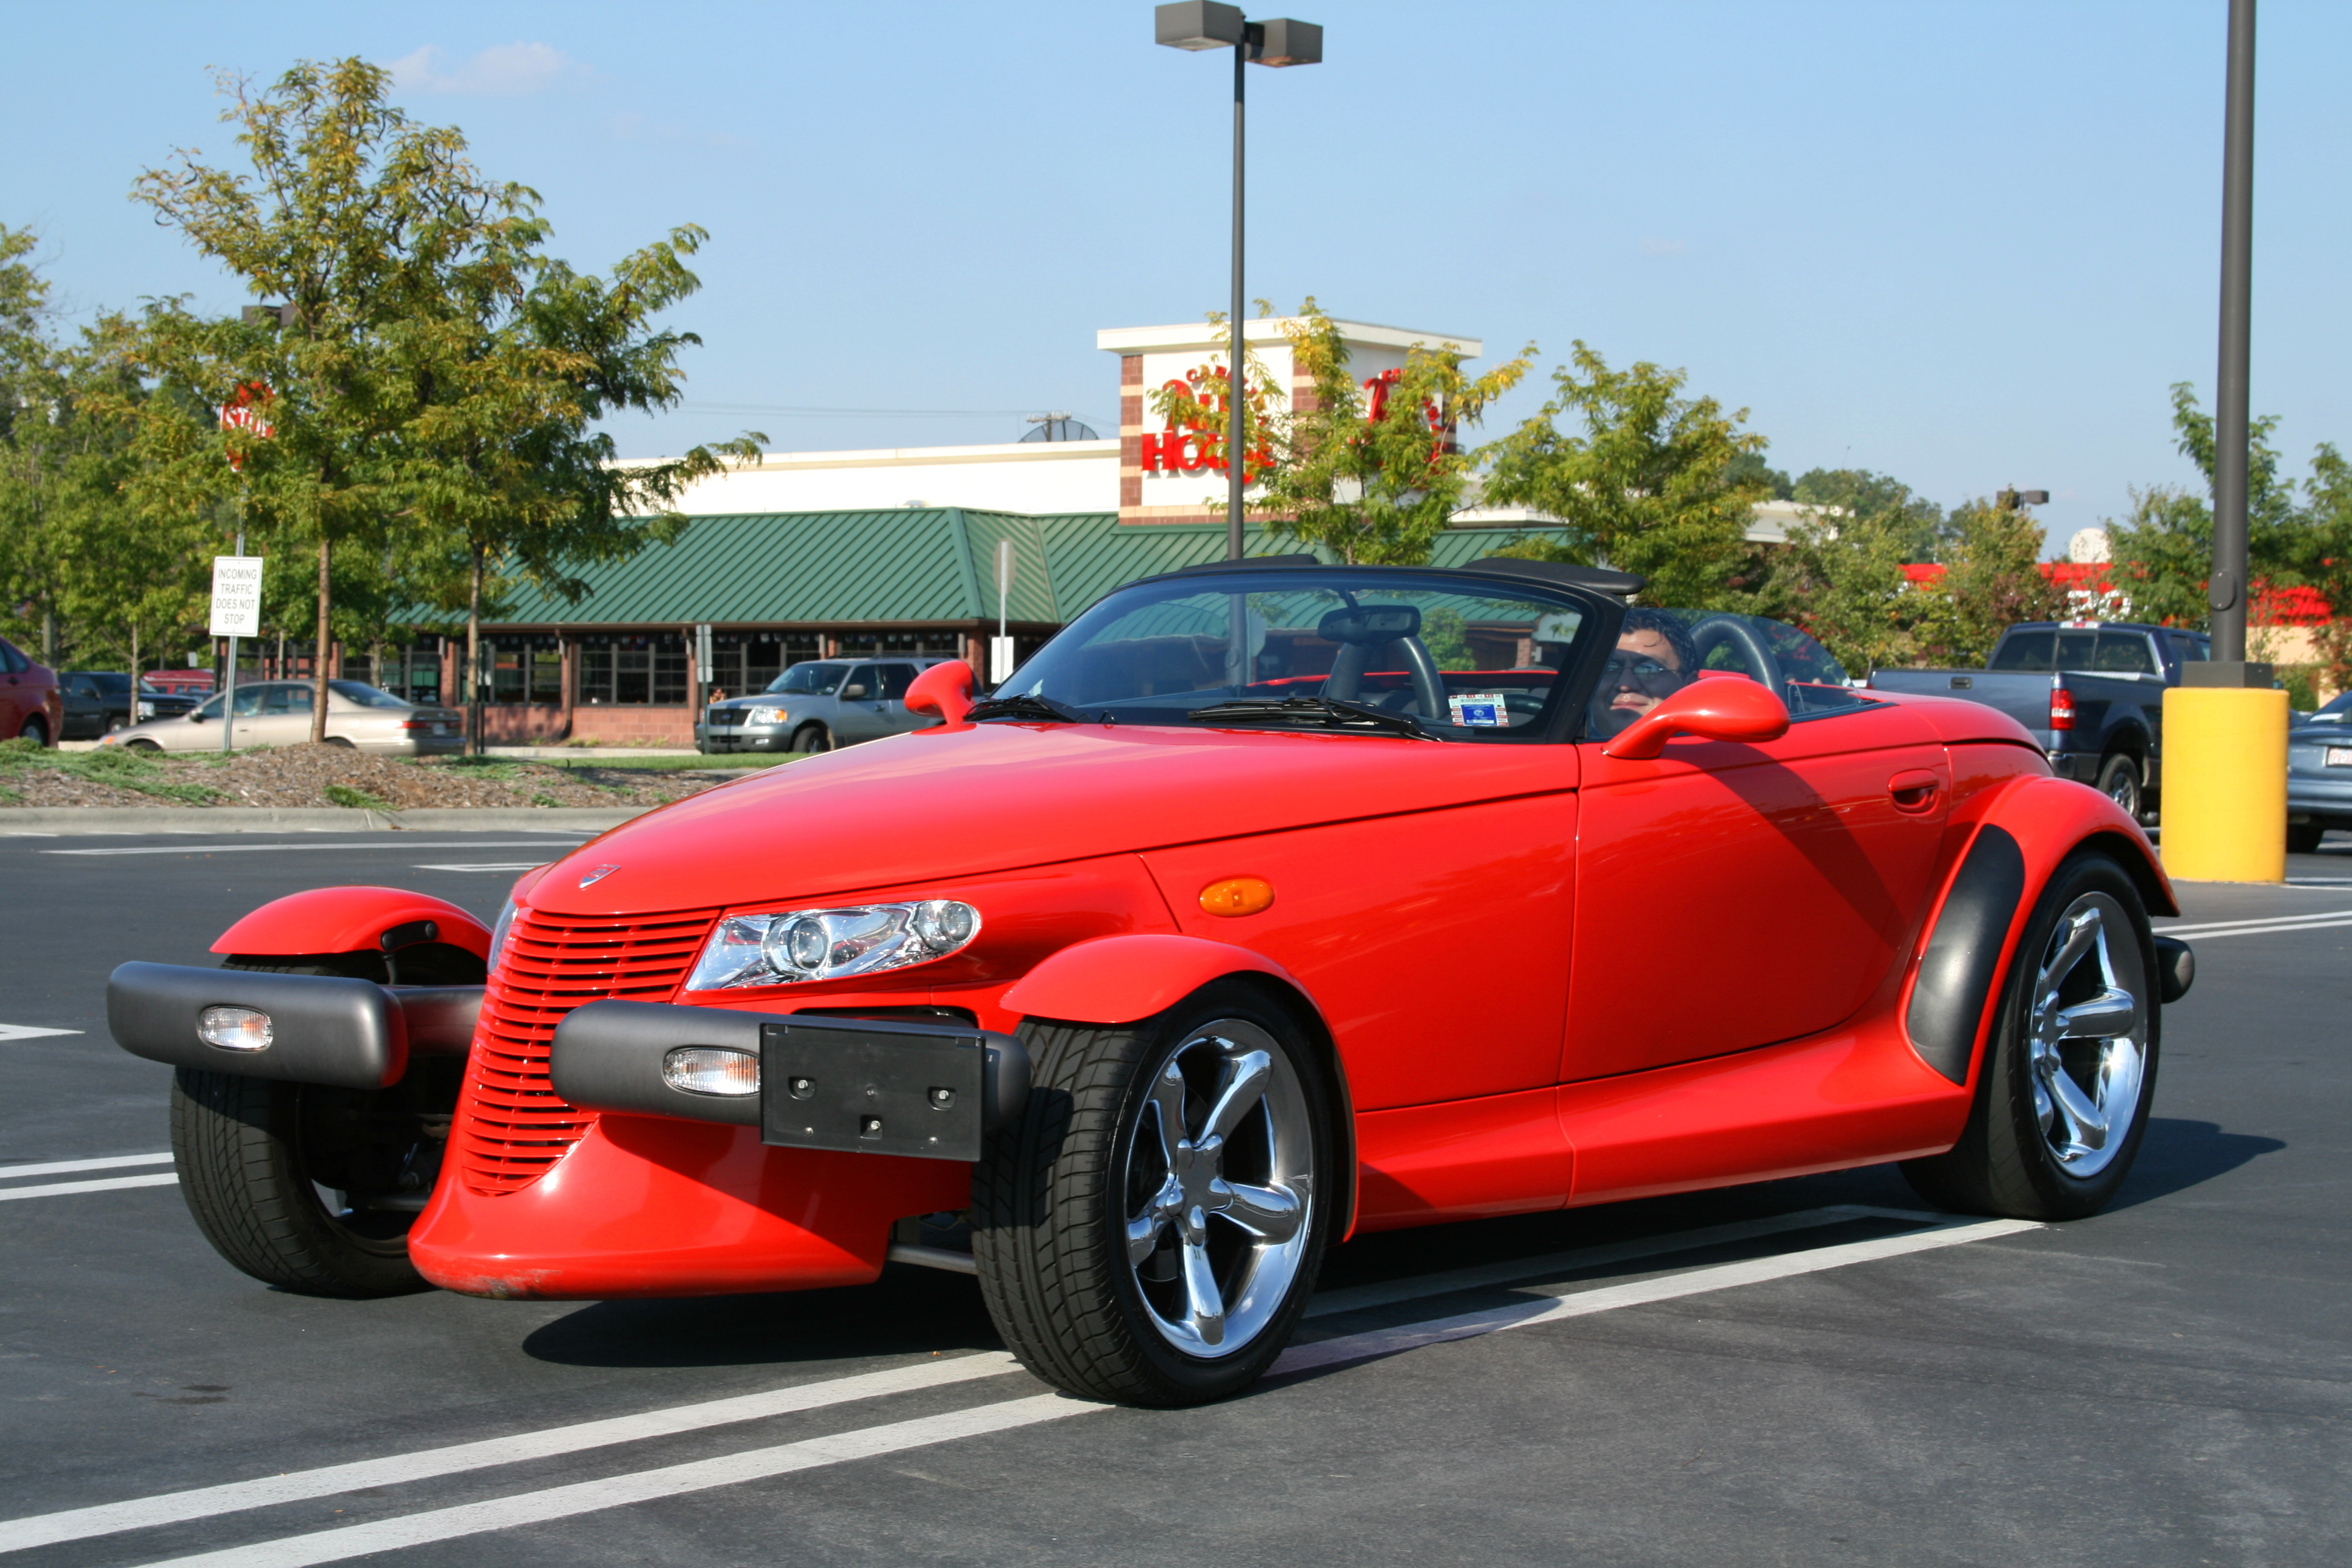 chrysler prowler pictures #1